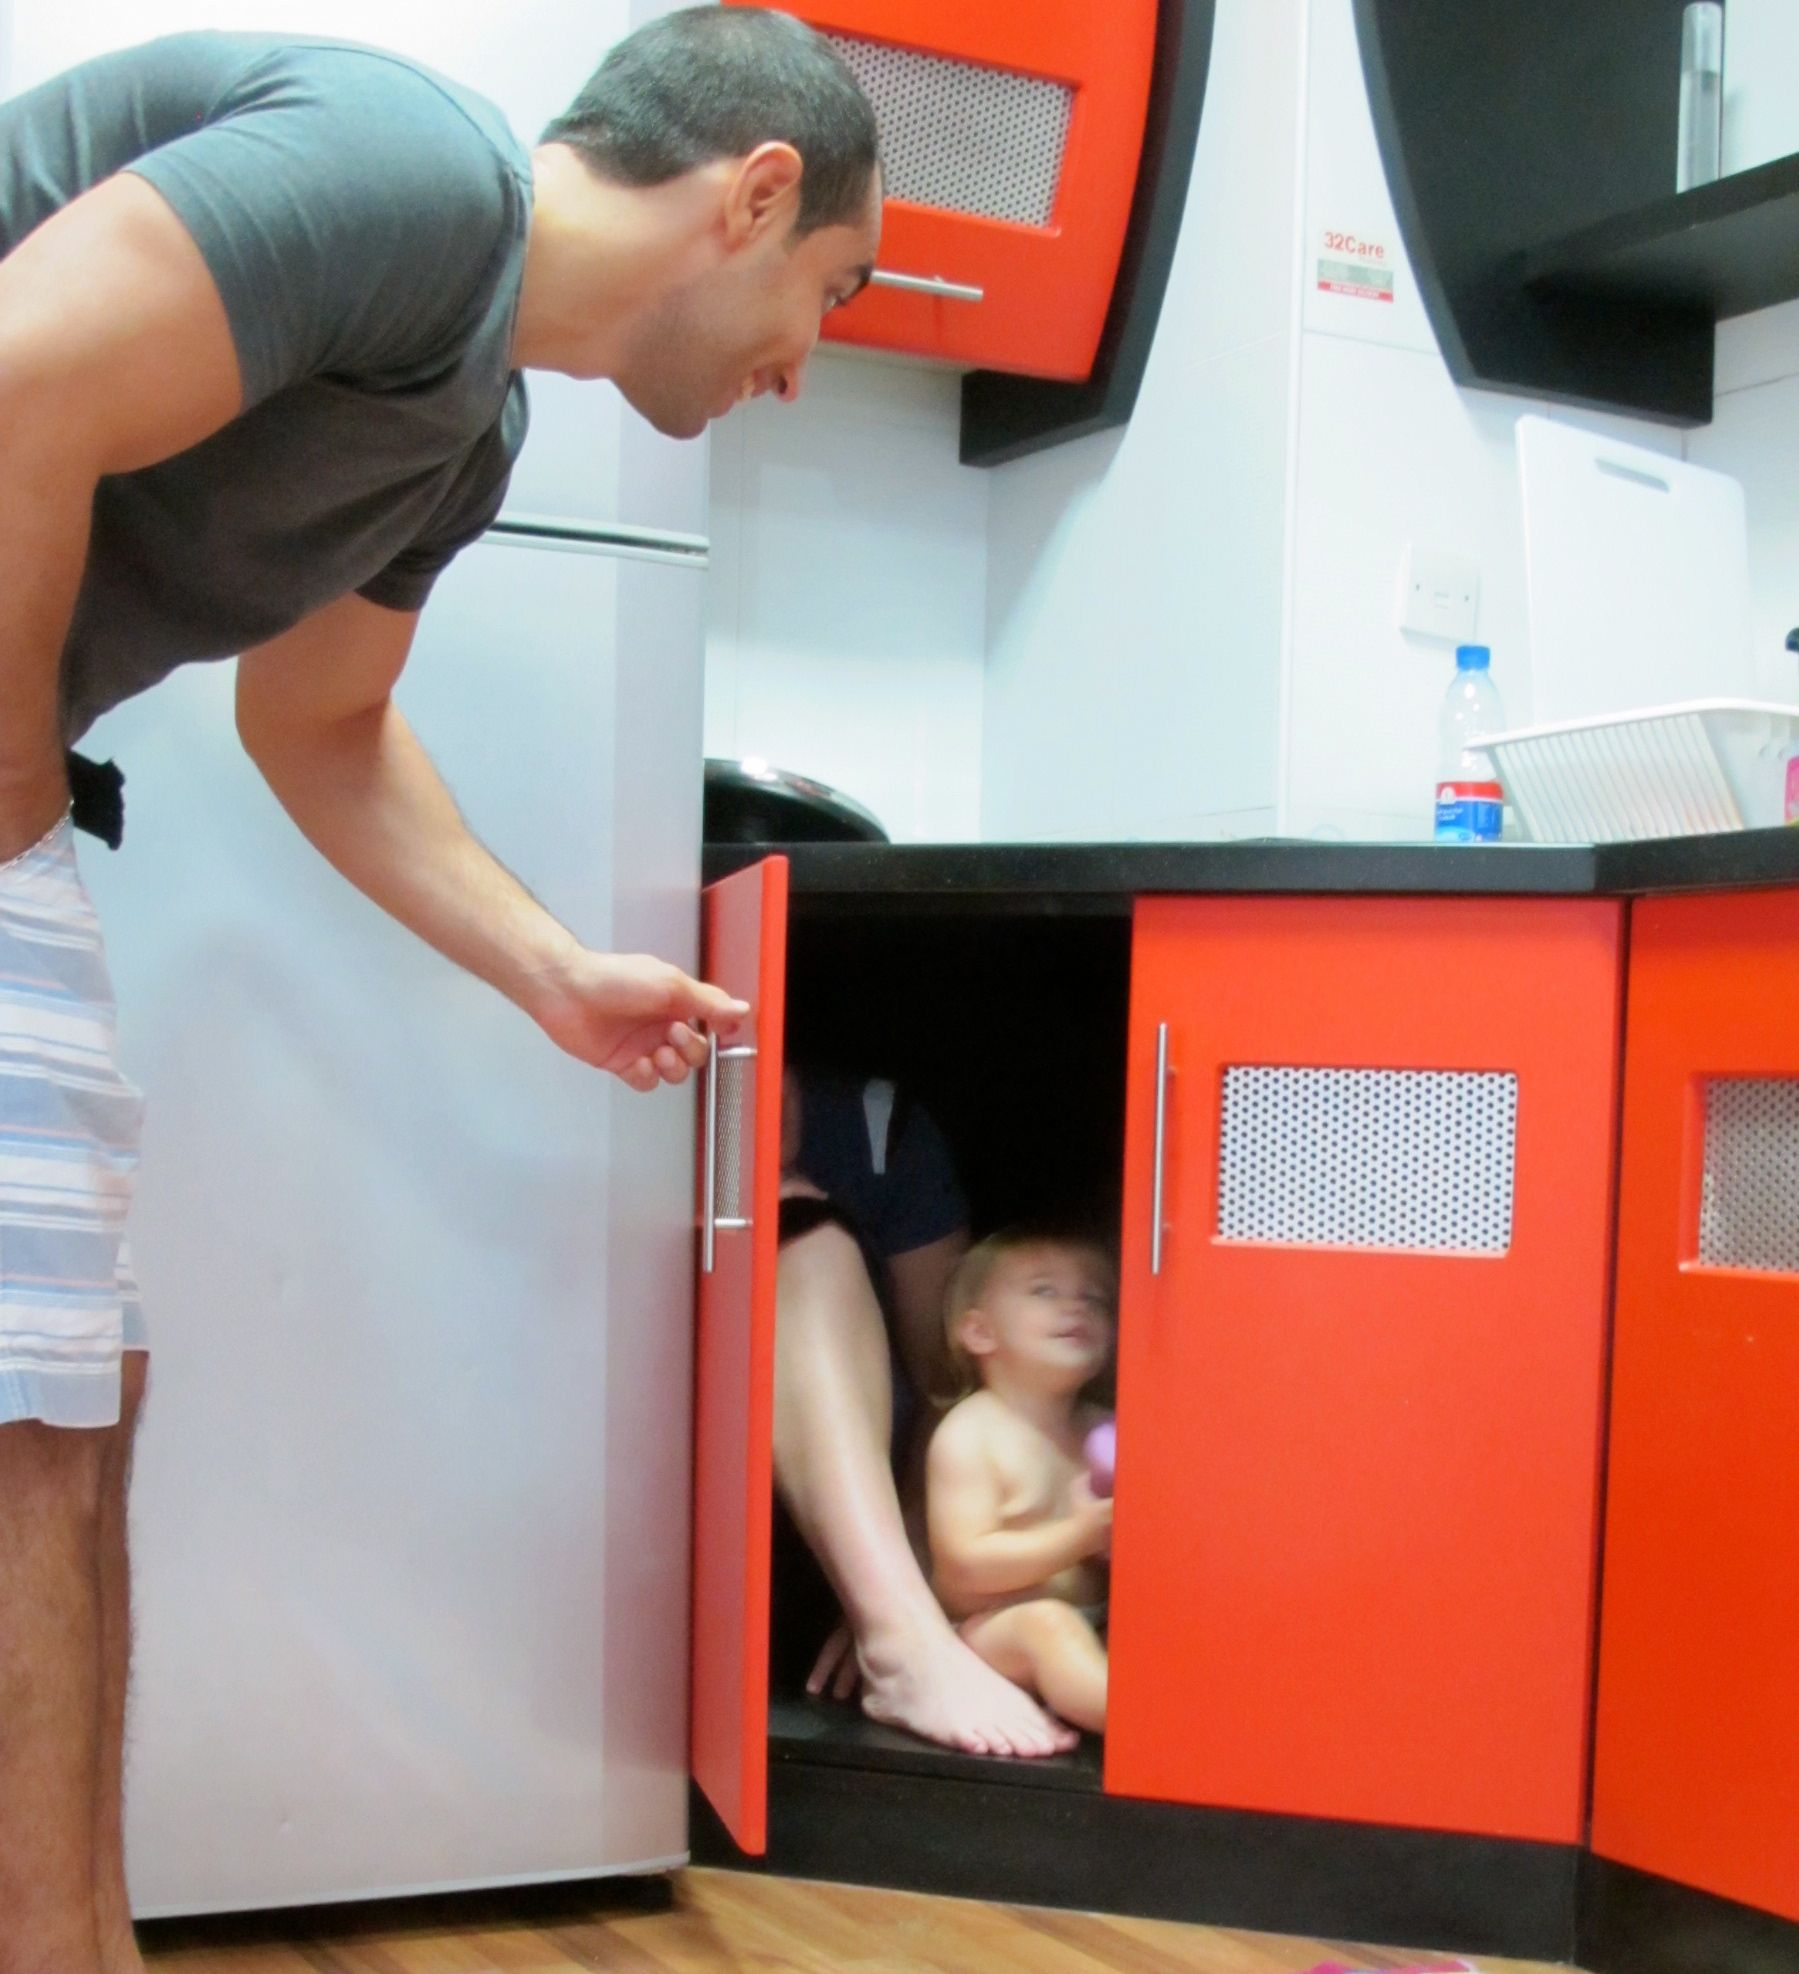 Any cupboard can accommodate a little kid. These were so roomy that mom could fit too!